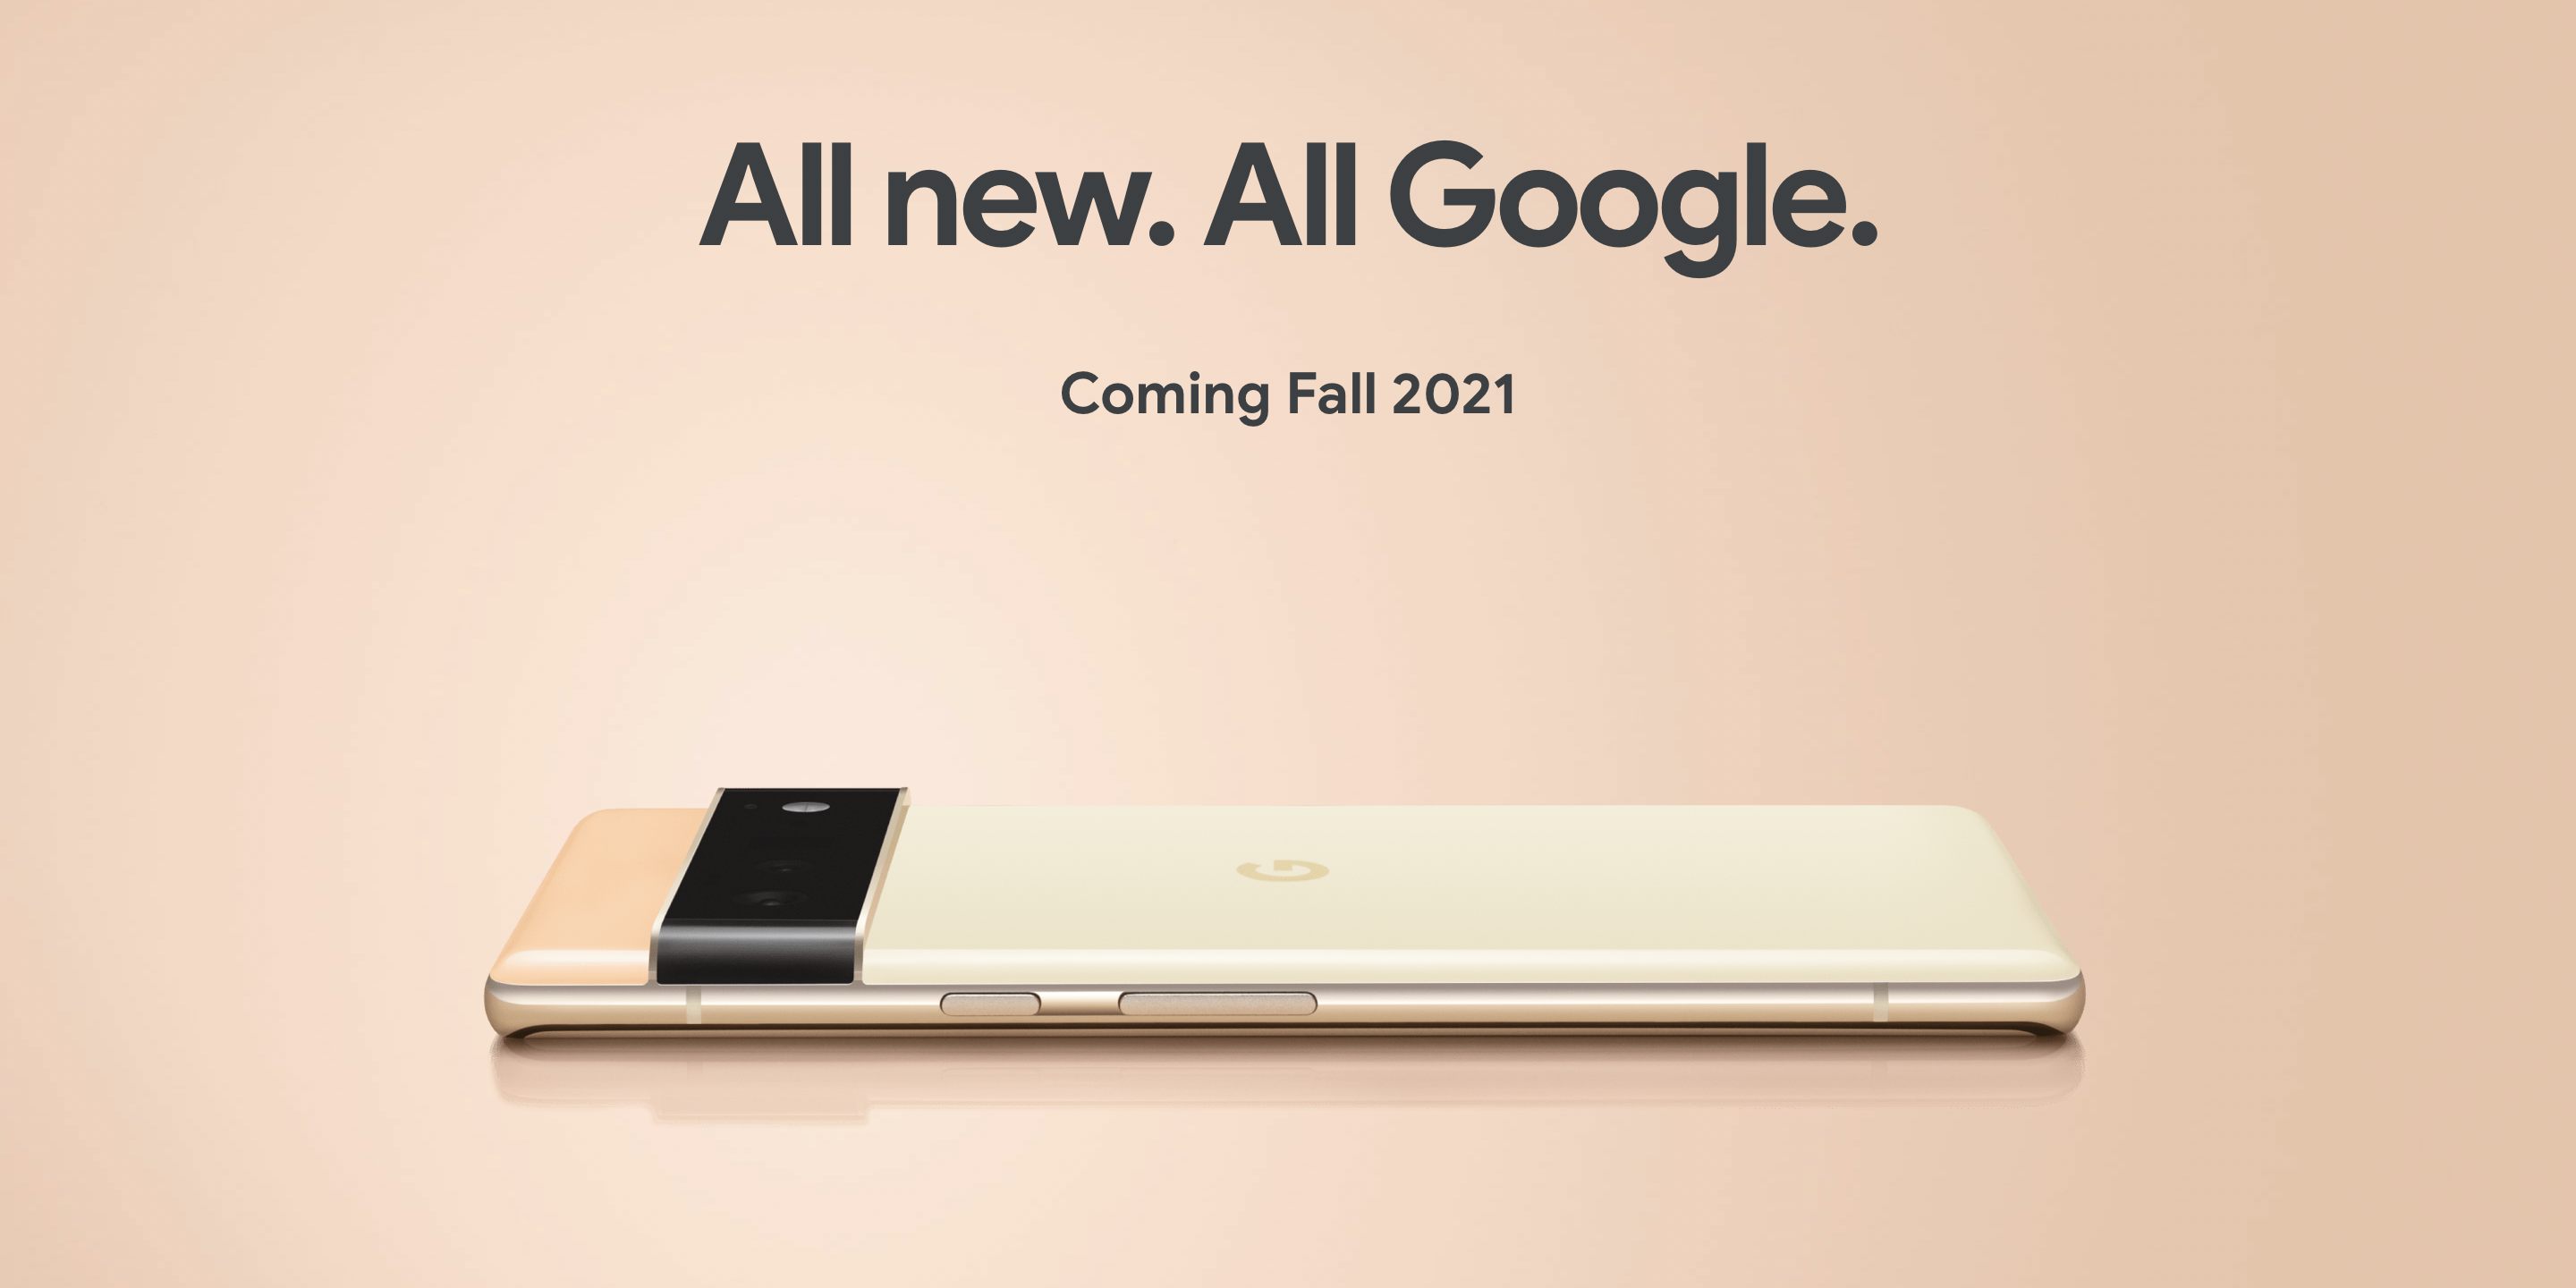 Pixel 6 and Pixel 6 Pro could be upheld until 2026 with 4 significant OS refreshes